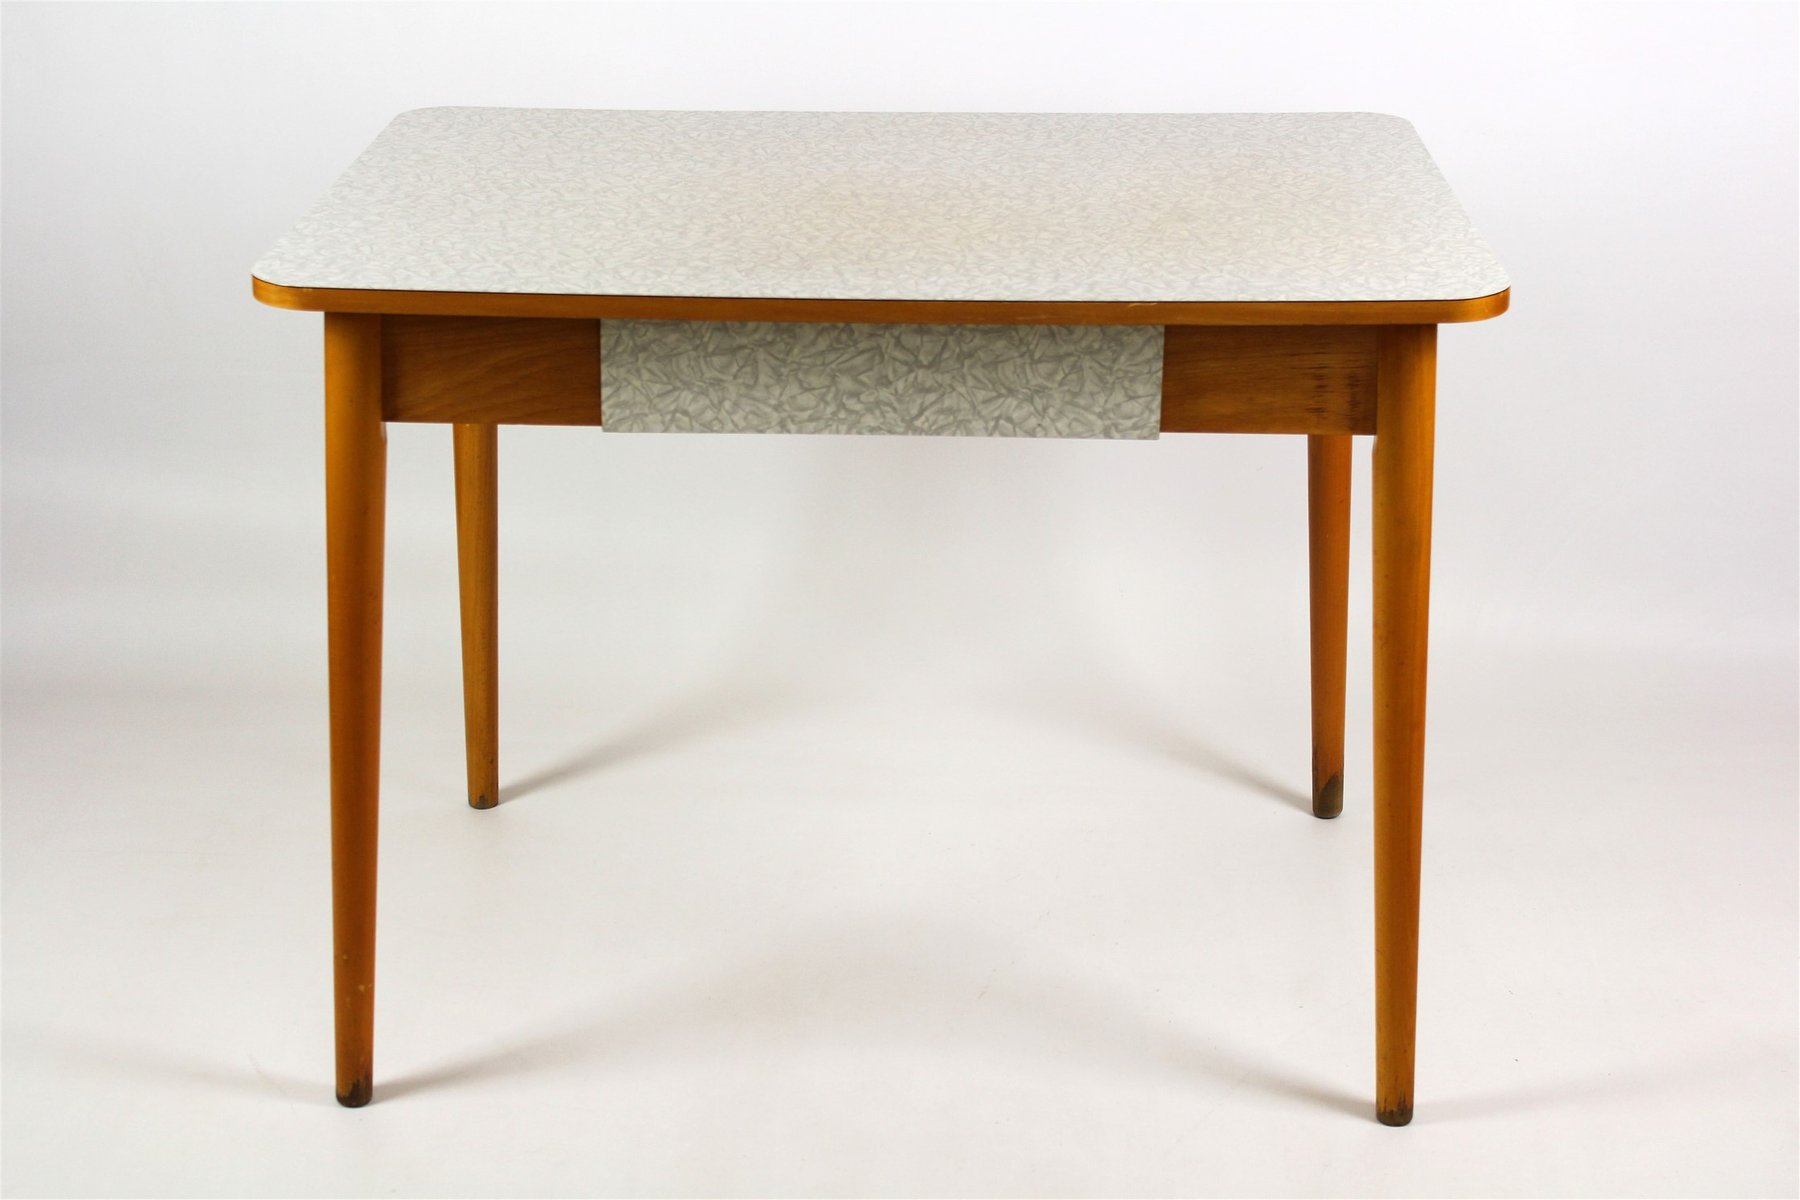 formica kitchen table from jitona 1960s formica kitchen table from jitona 1960s for sale at pamono  rh   pamono com